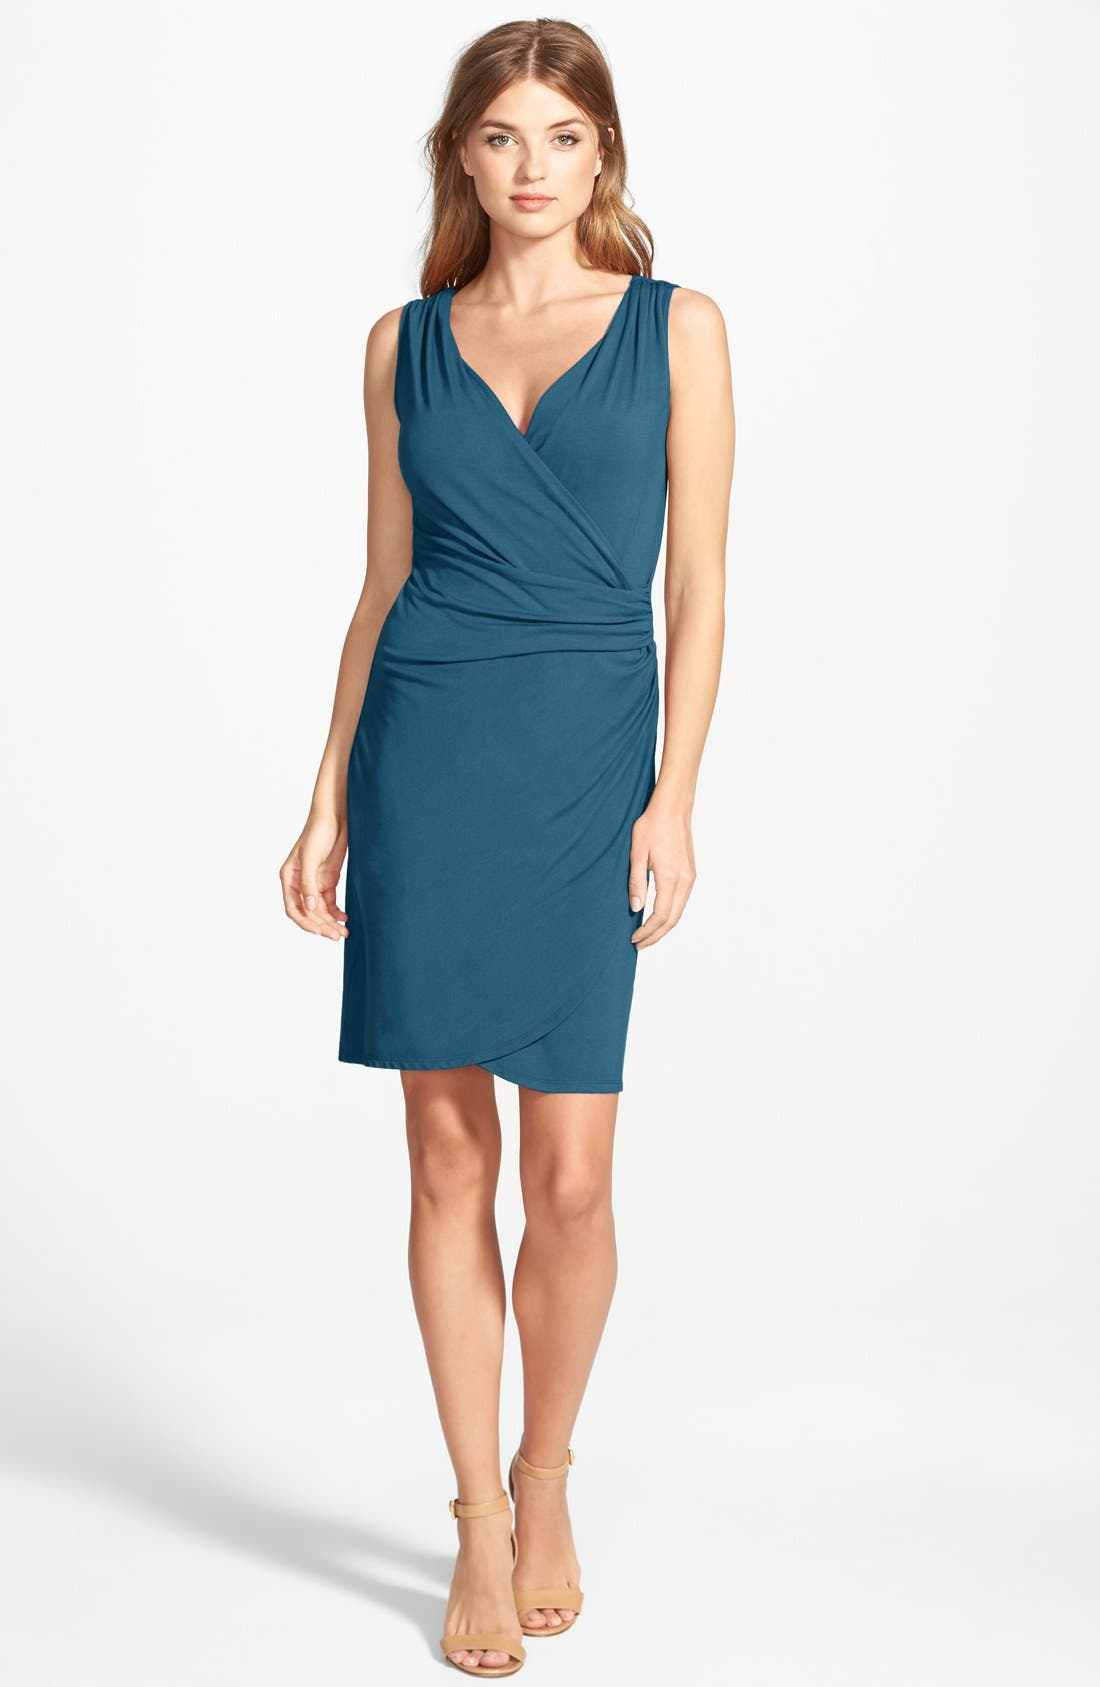 Alternate Image 1 Selected - Tommy Bahama 'Tambour' Sleeveless Gathered Jersey Dress